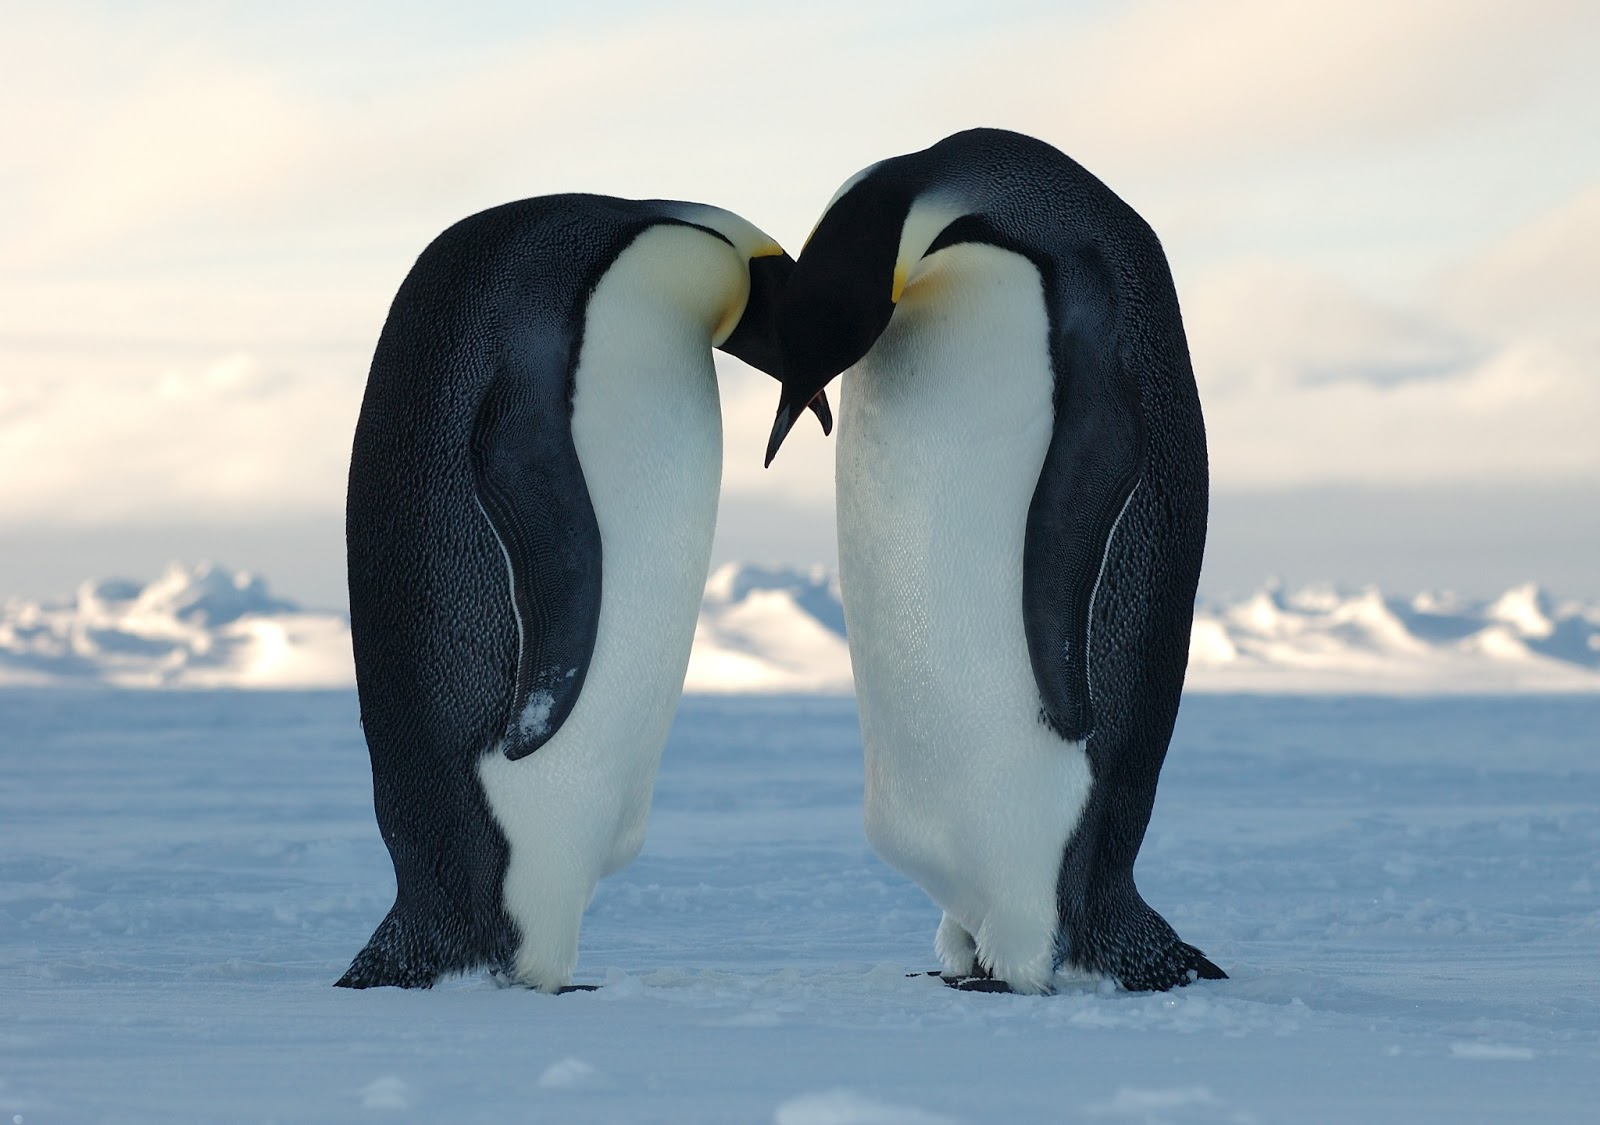 emperor penguins penguin female male couple making lover emporer facts pinguins egg couples penquins mate eggs animals kissing range